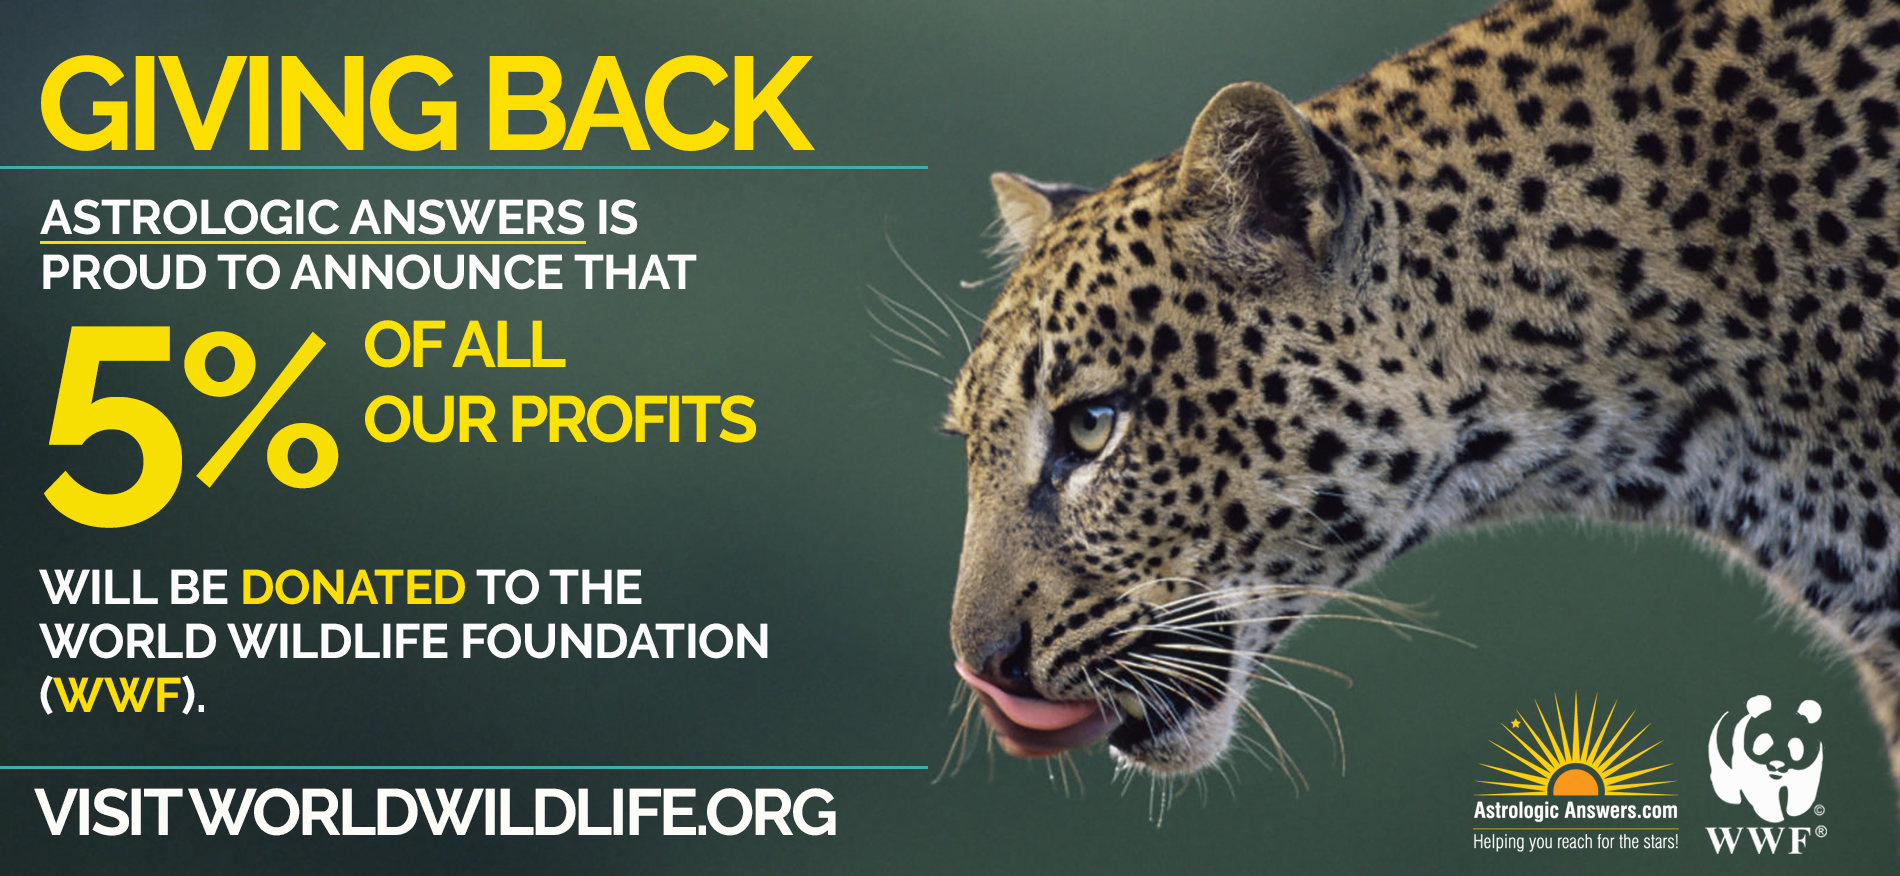 Giving 5% Back to WWF Image